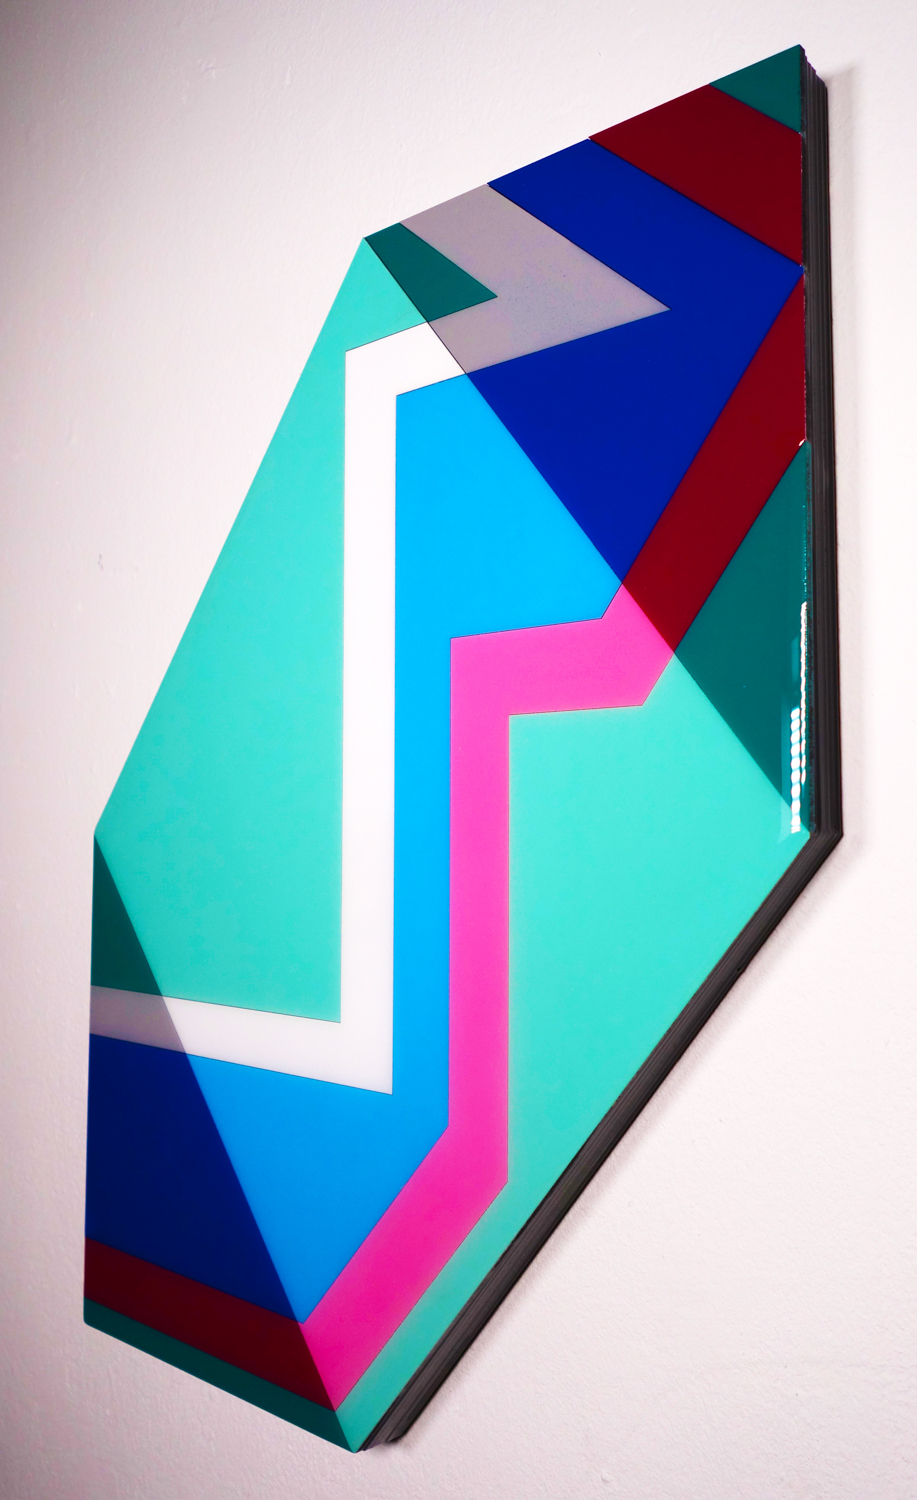 Tavar Zawacki - DIAMOND ALIGNMENT (MINT), 2018